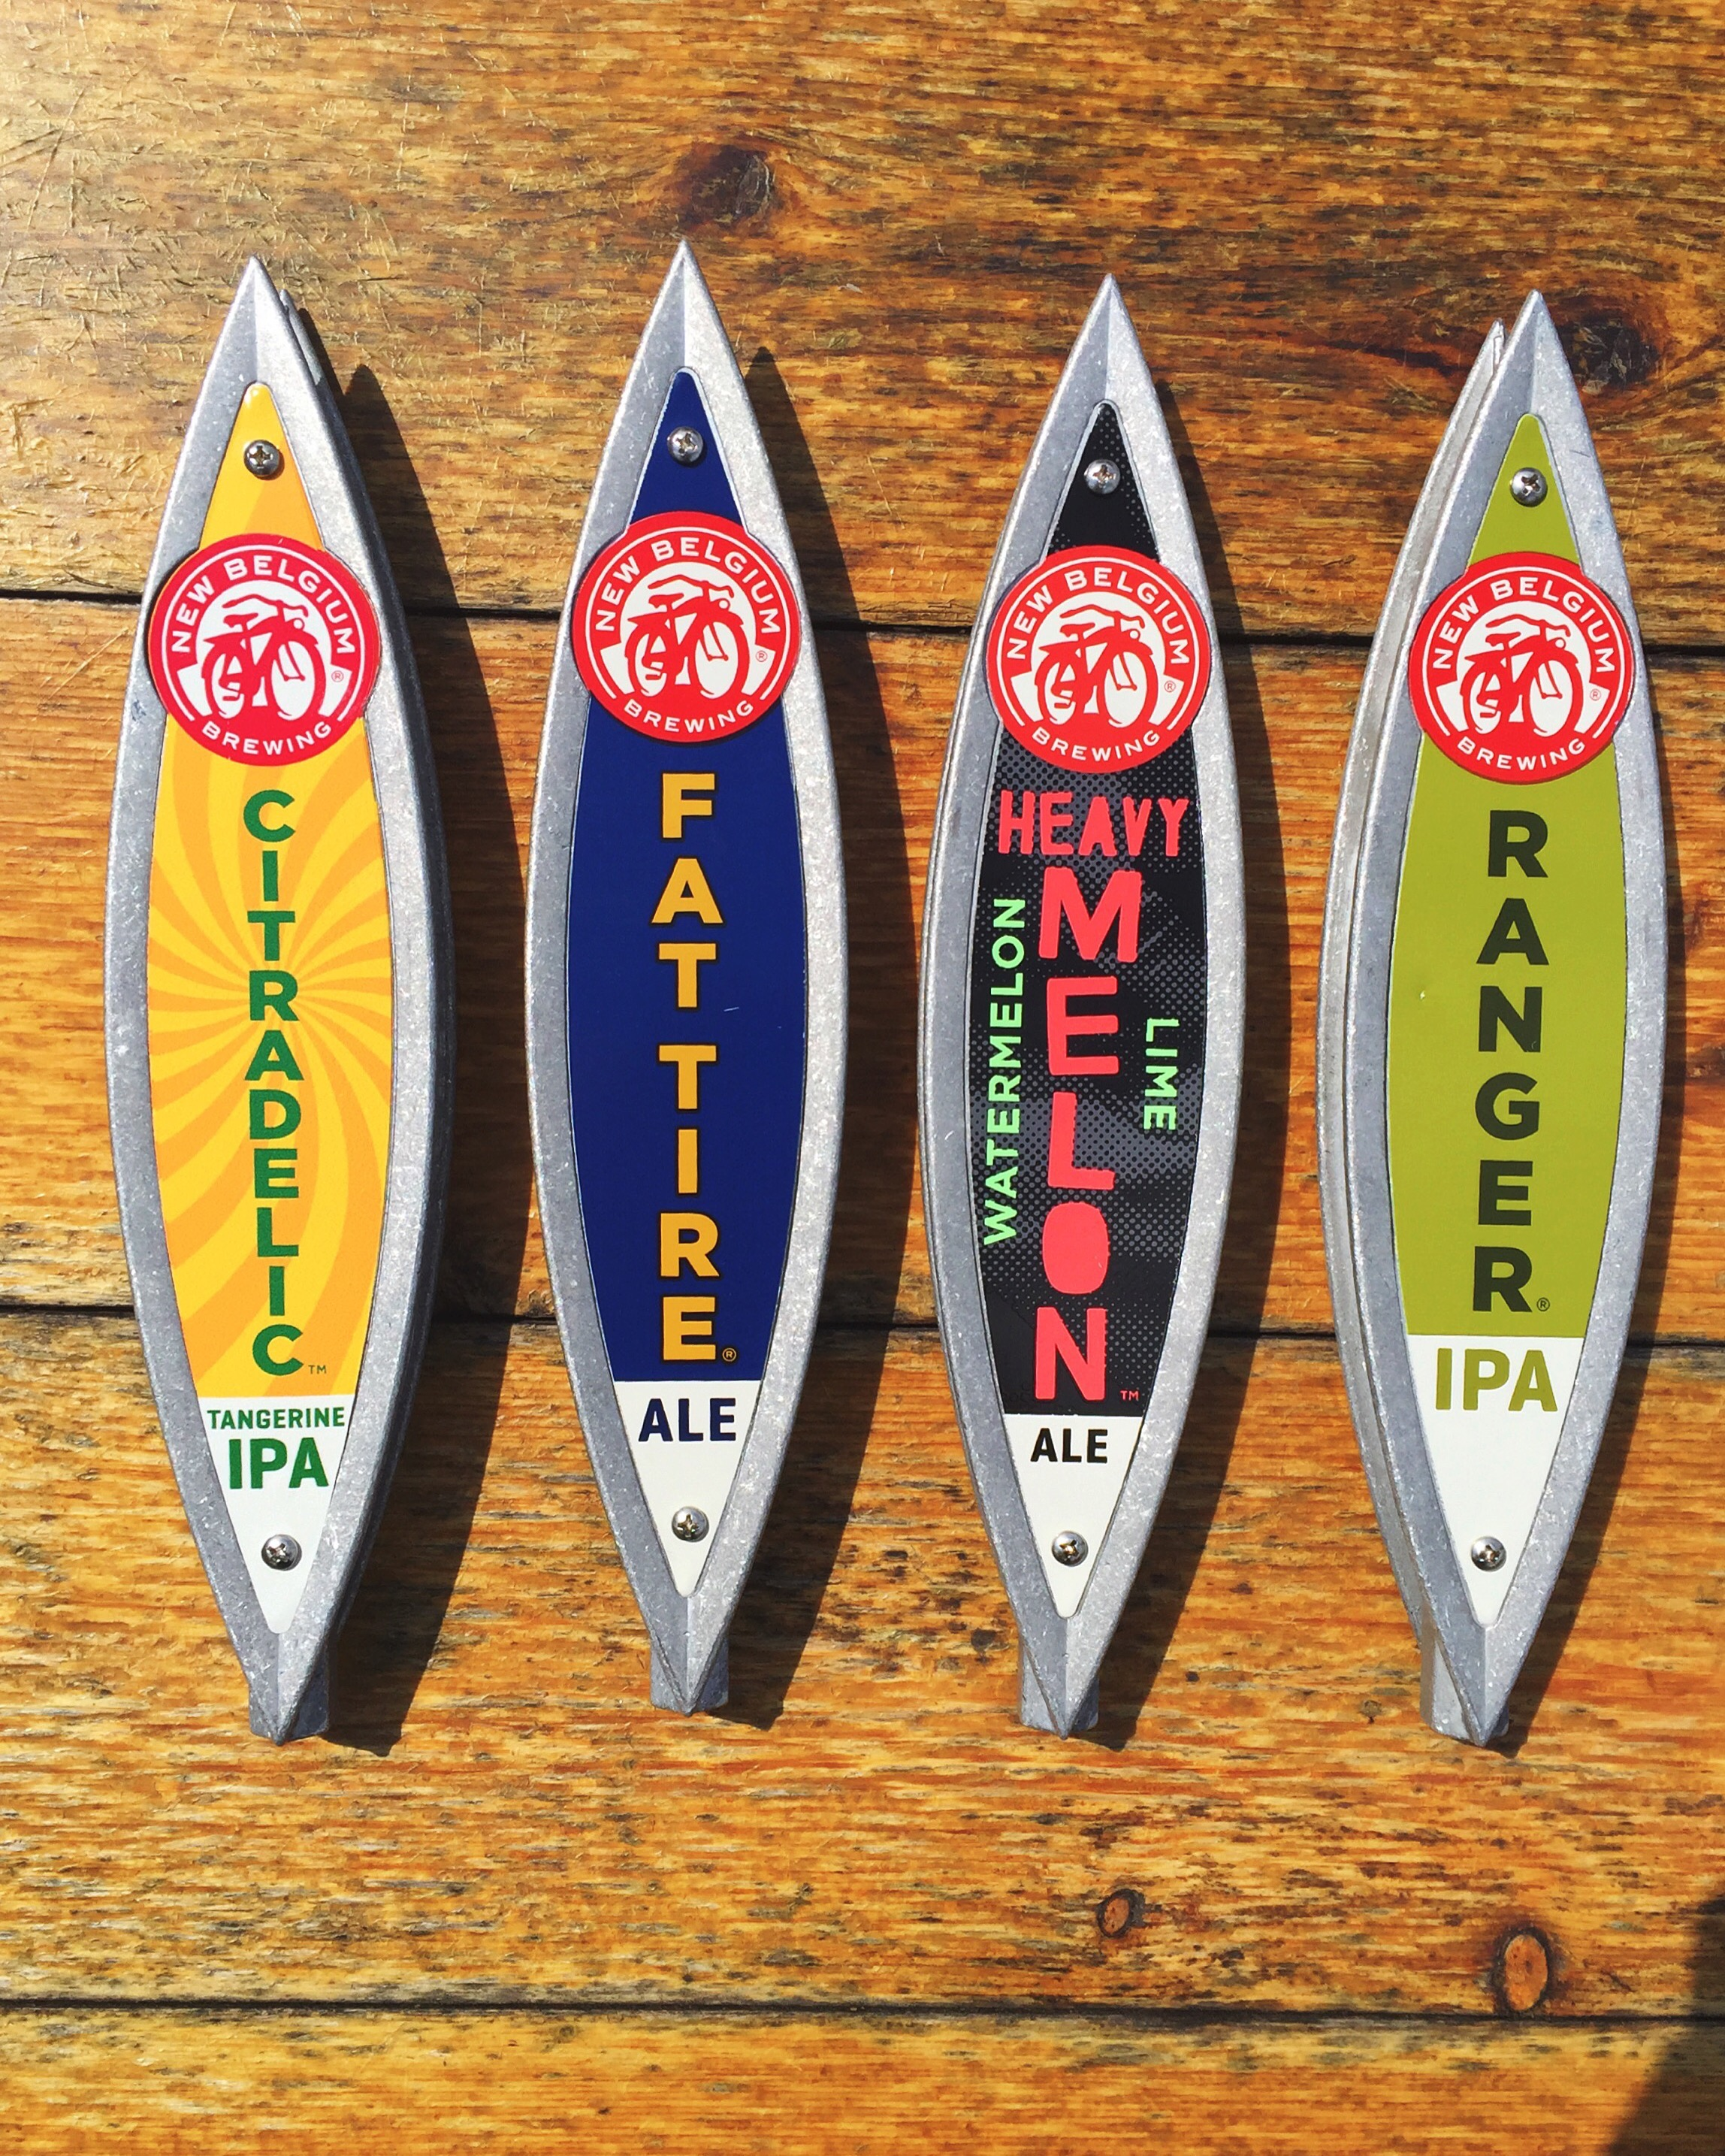 New Belgium Taps Photo